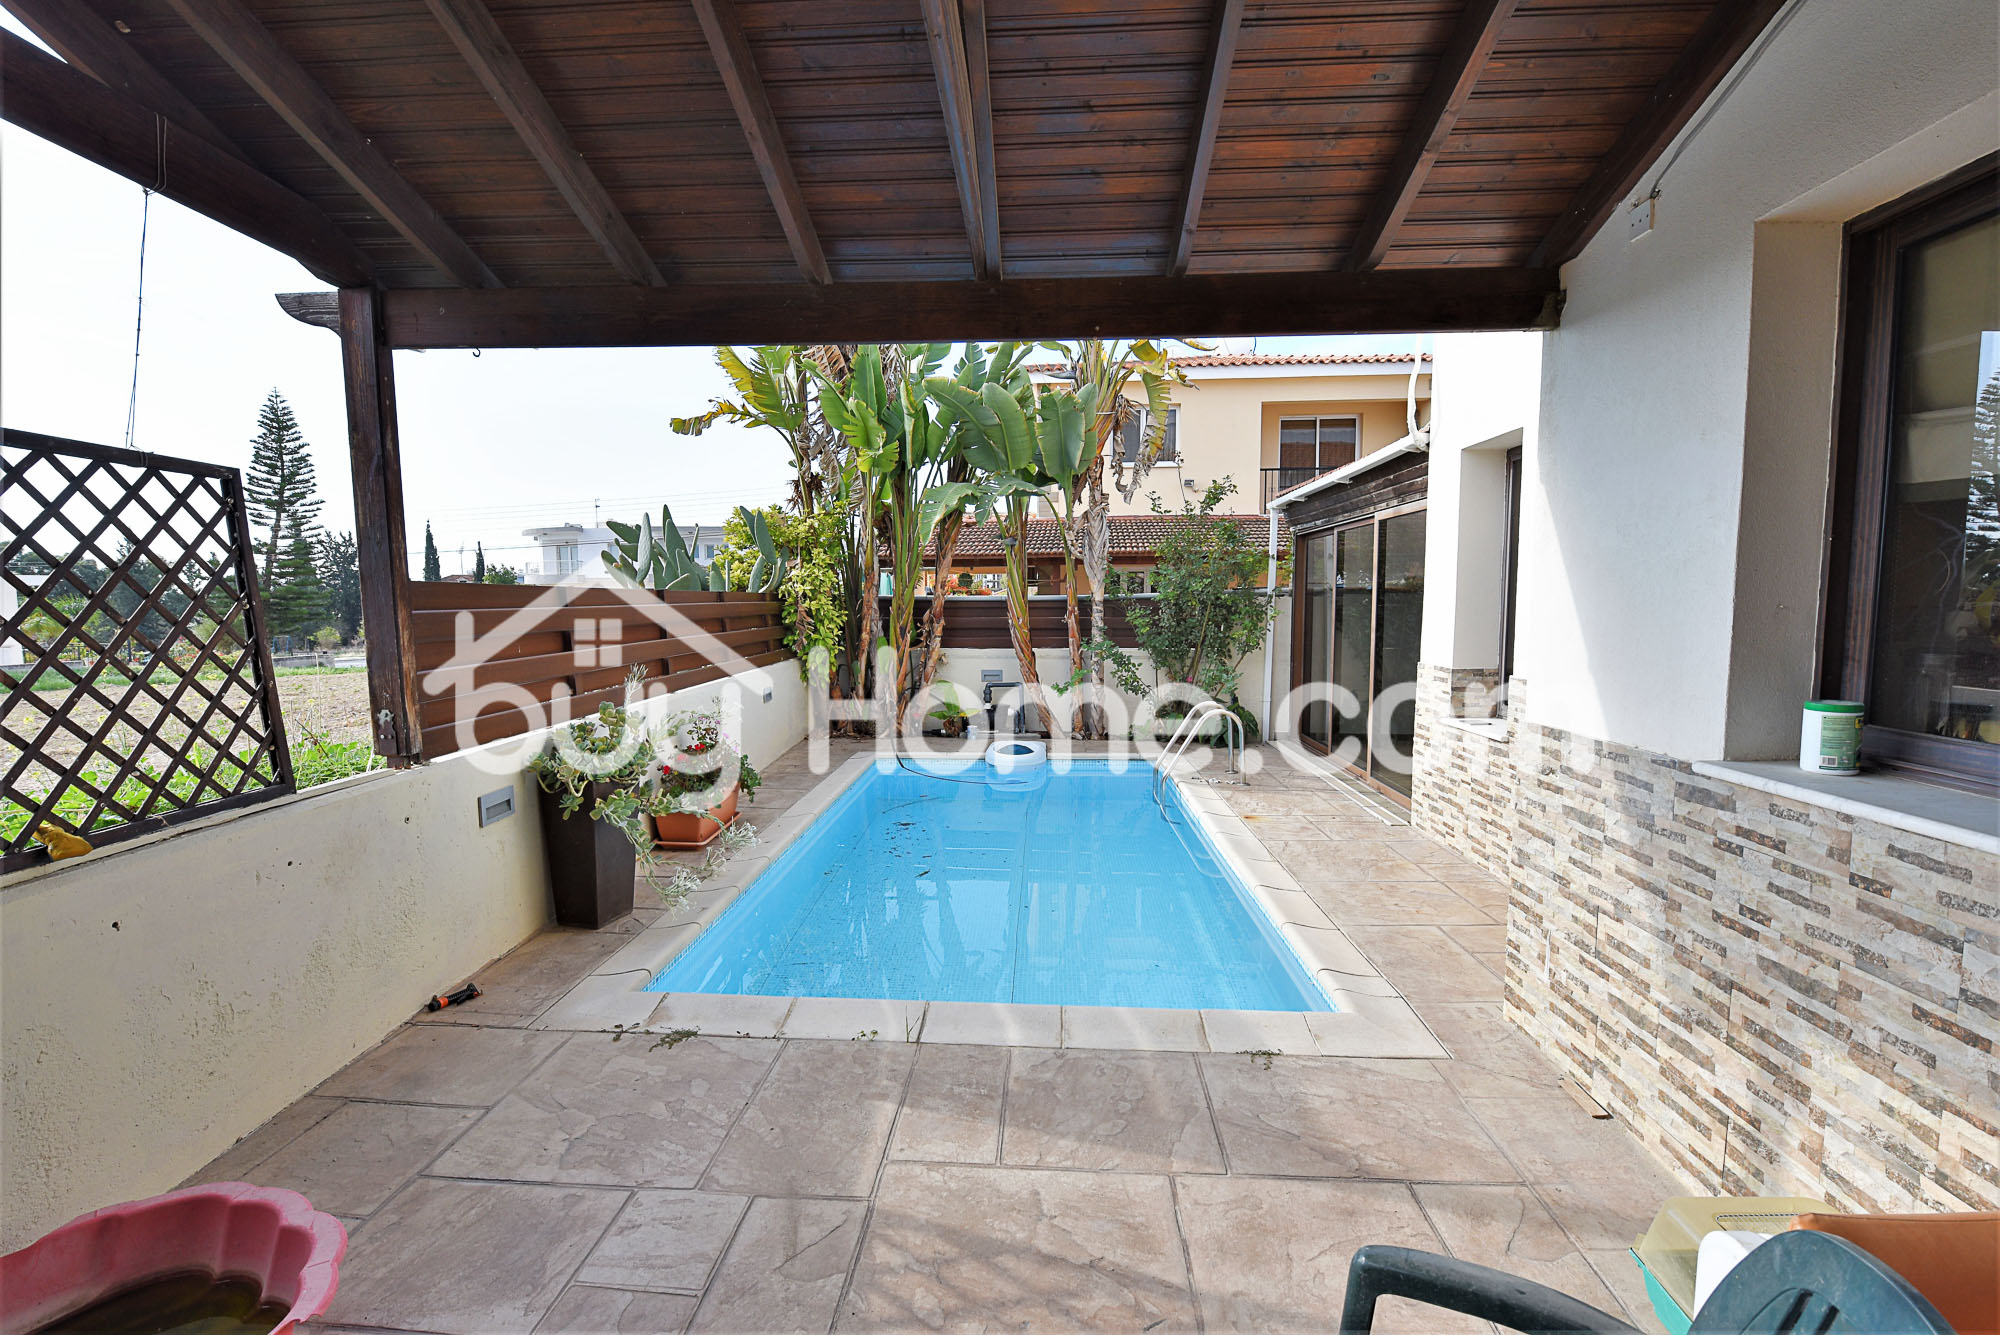 4 Bedroom Semi Detached with Pool | BuyHome